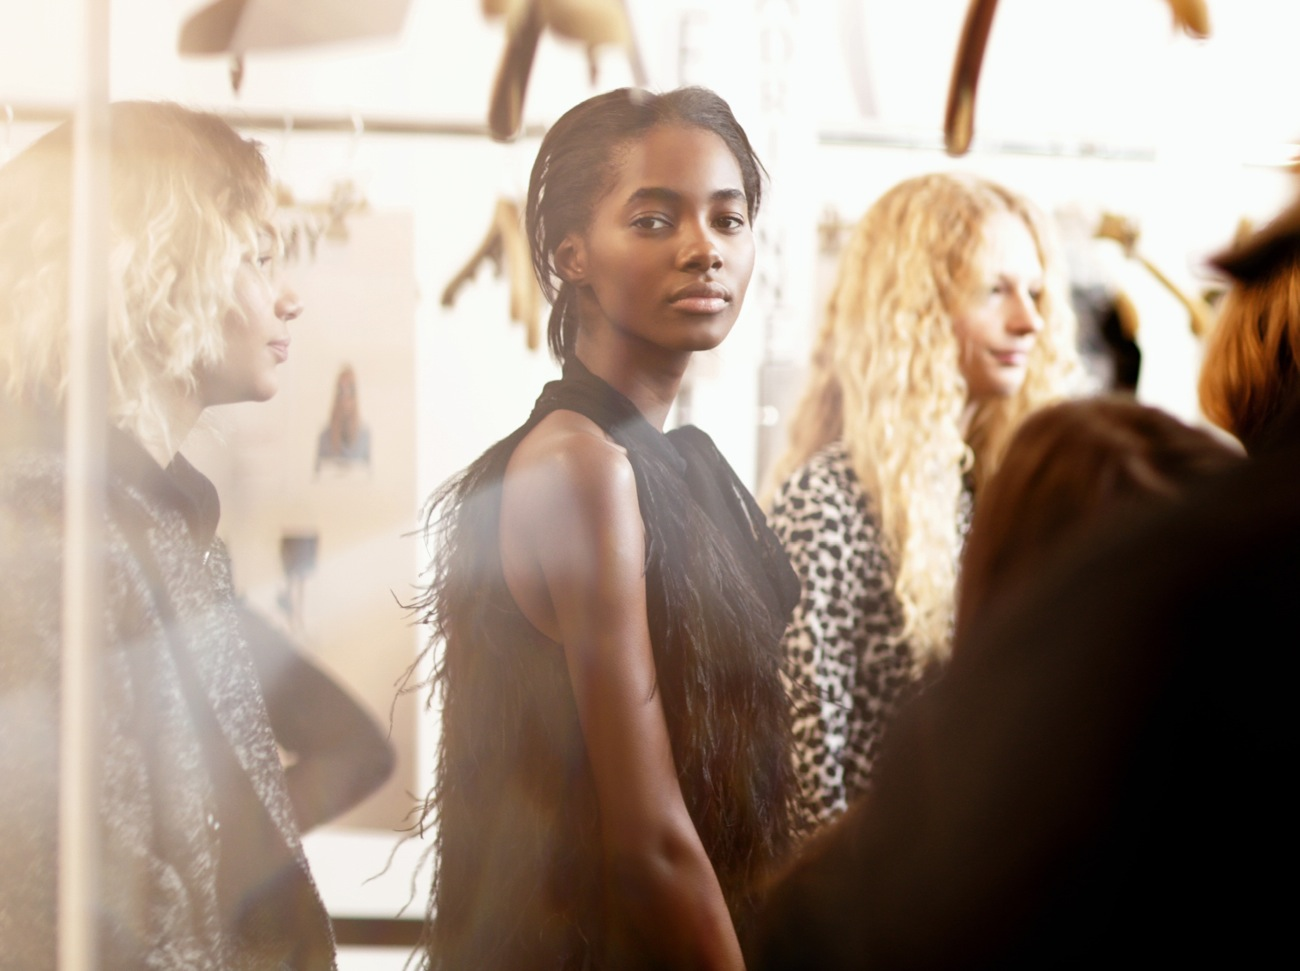 Backstage at the Michael Kors Fall Winter 2016 Show 3